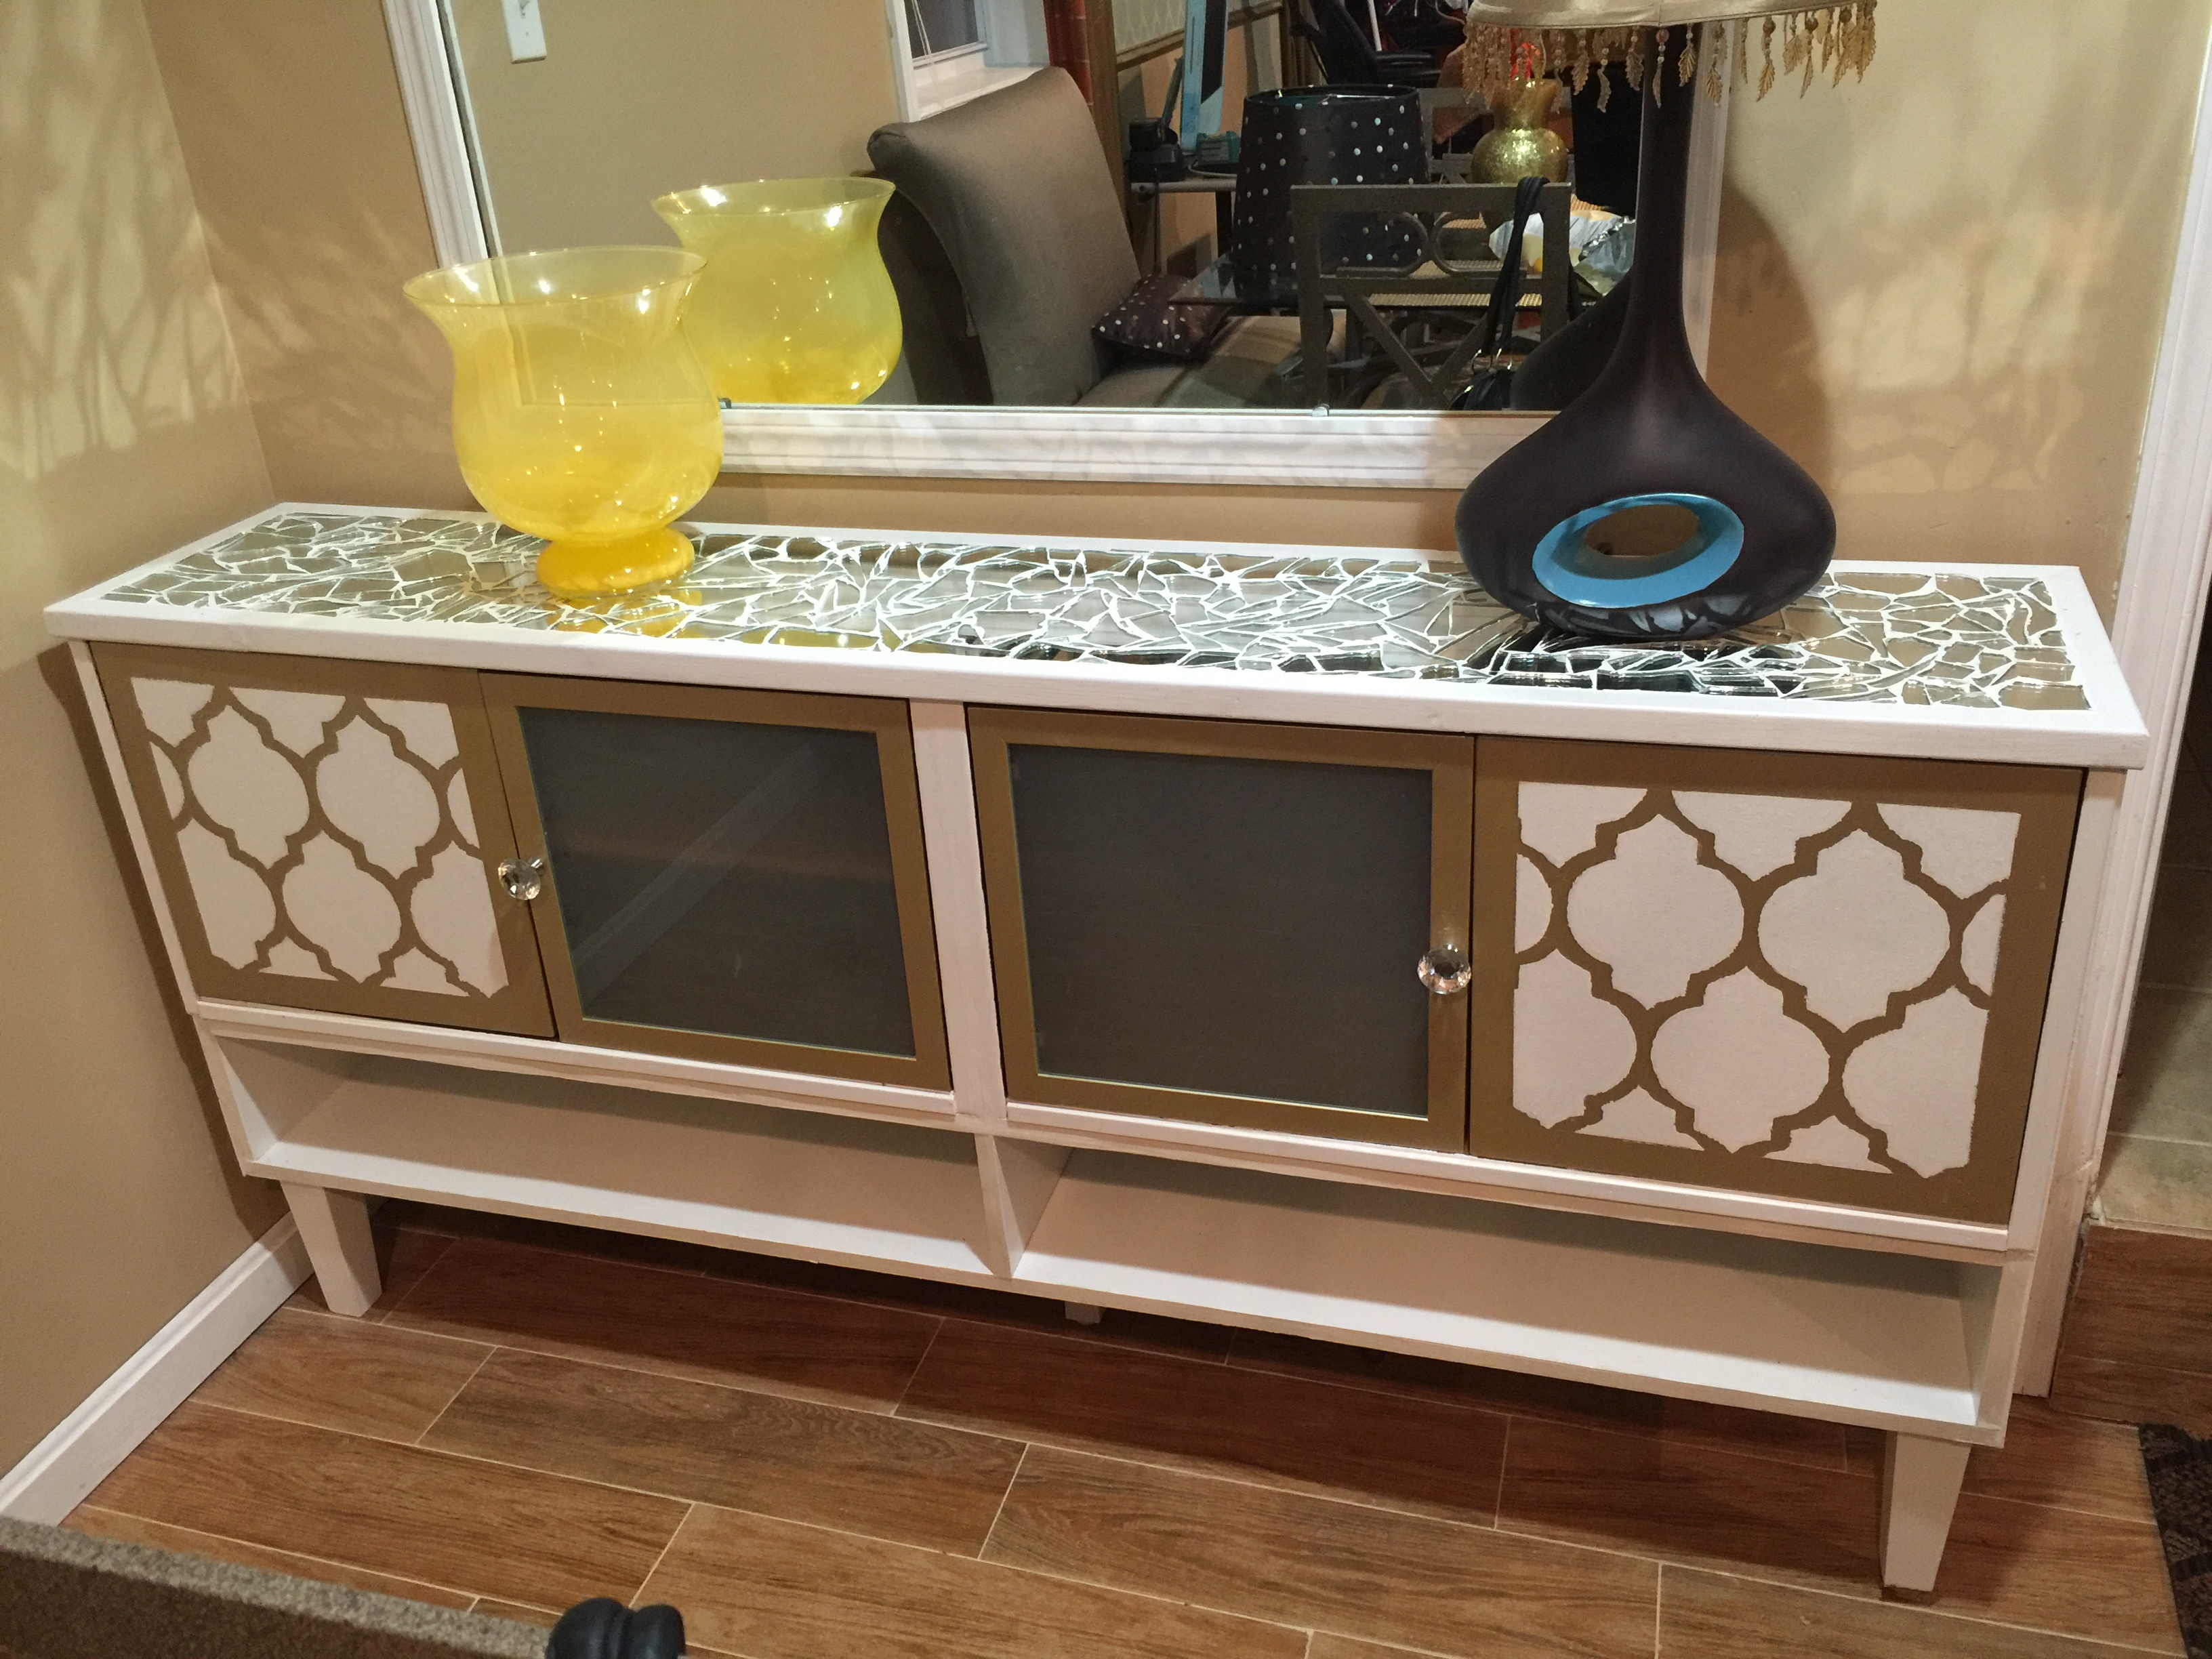 Free Ikea Cabinets become a Mirror Mosaic Top Sideboard